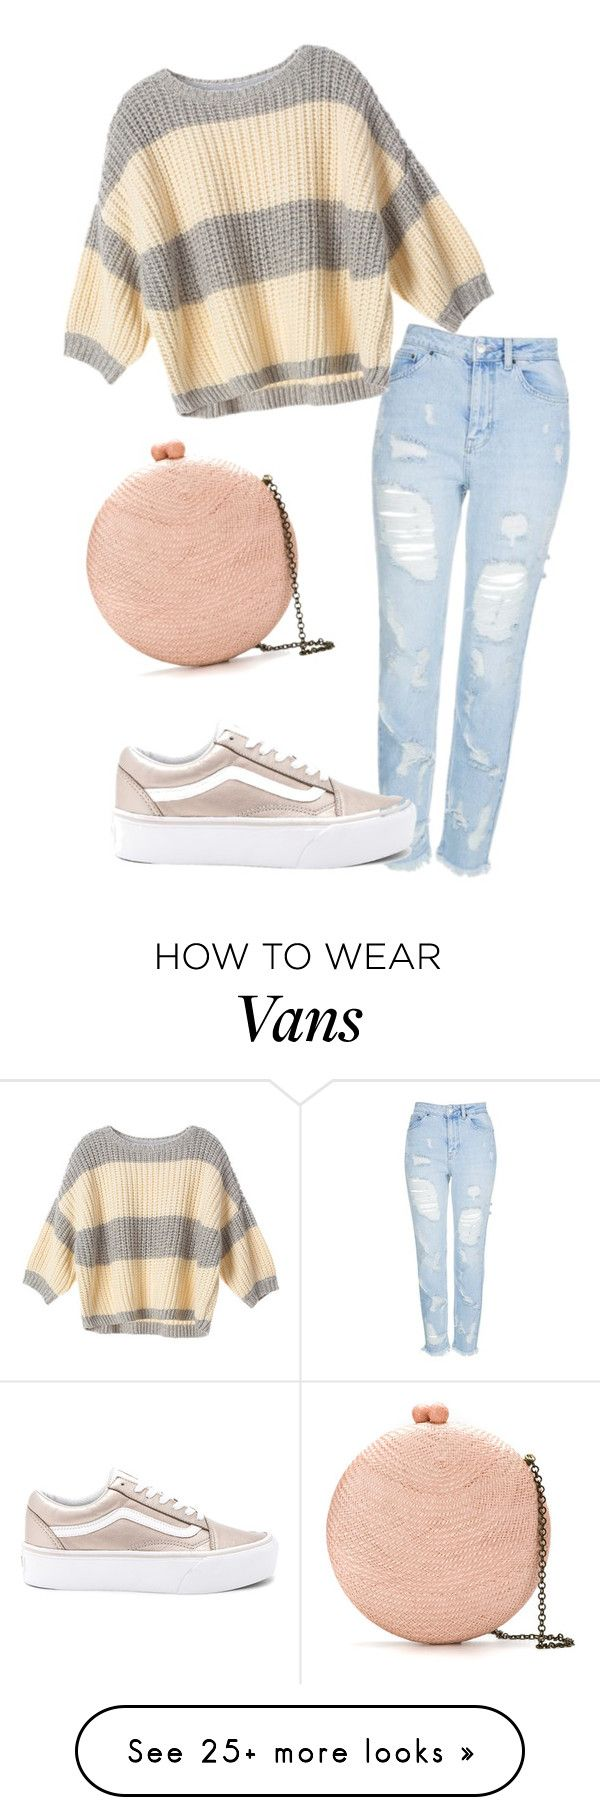 """Casual chic"" by annas02 on Polyvore featuring Topshop, Vans, Serpui and Victoria's Secret"